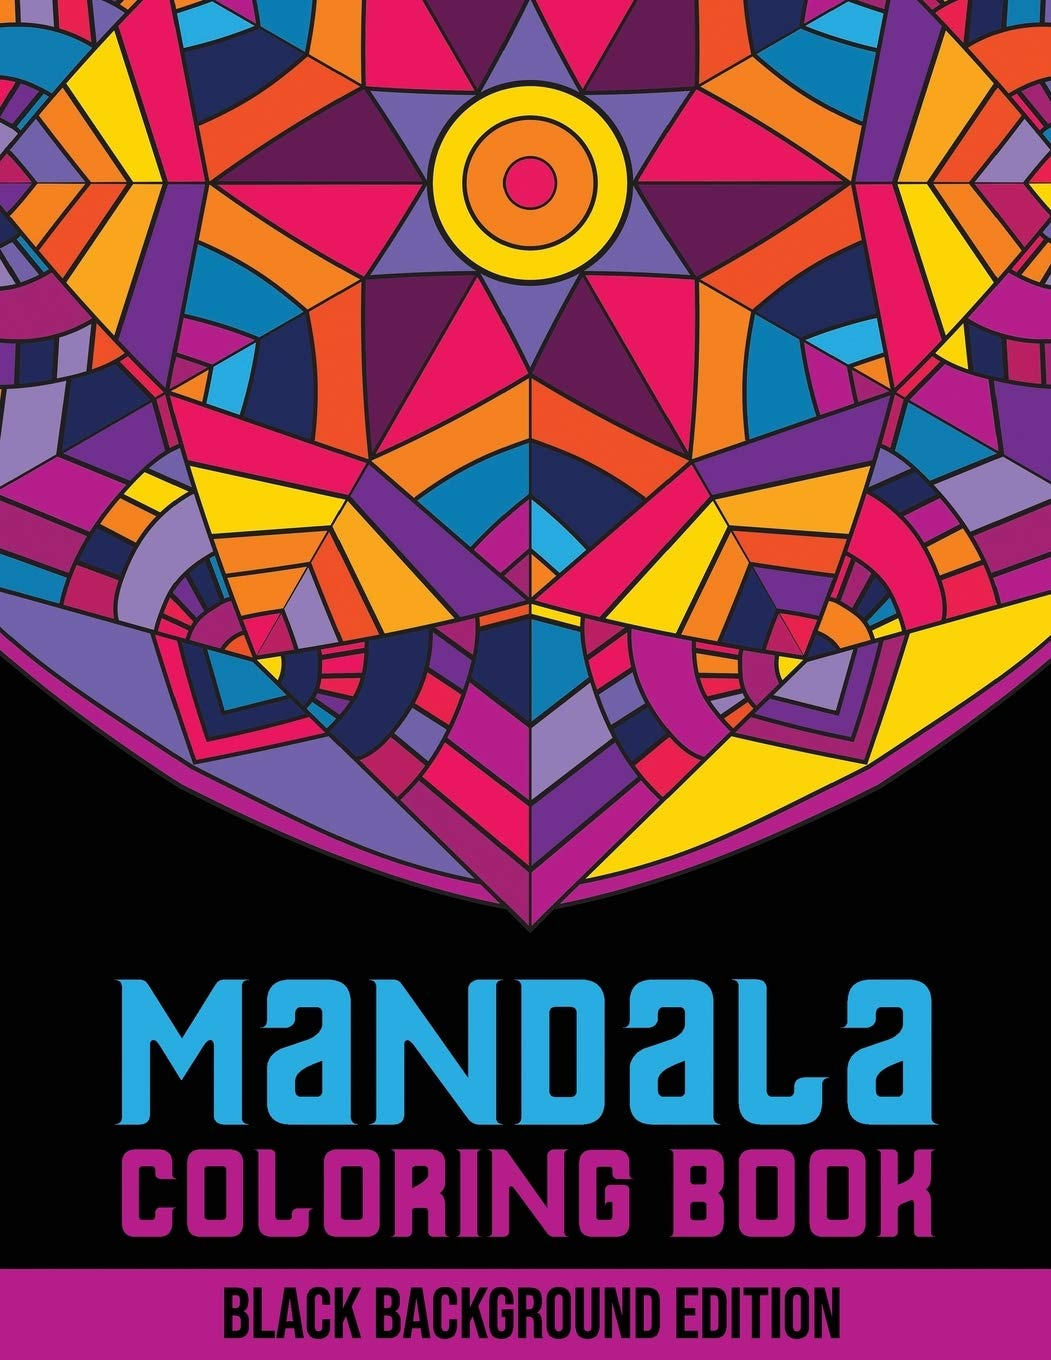 Buy Mandala Coloring Book Black Background Edition 50 Adult Coloring Pages With Geometric Designs Flower Patterns And Mehndi Shapes Book Online At Low Prices In India Mandala Coloring Book Black Background